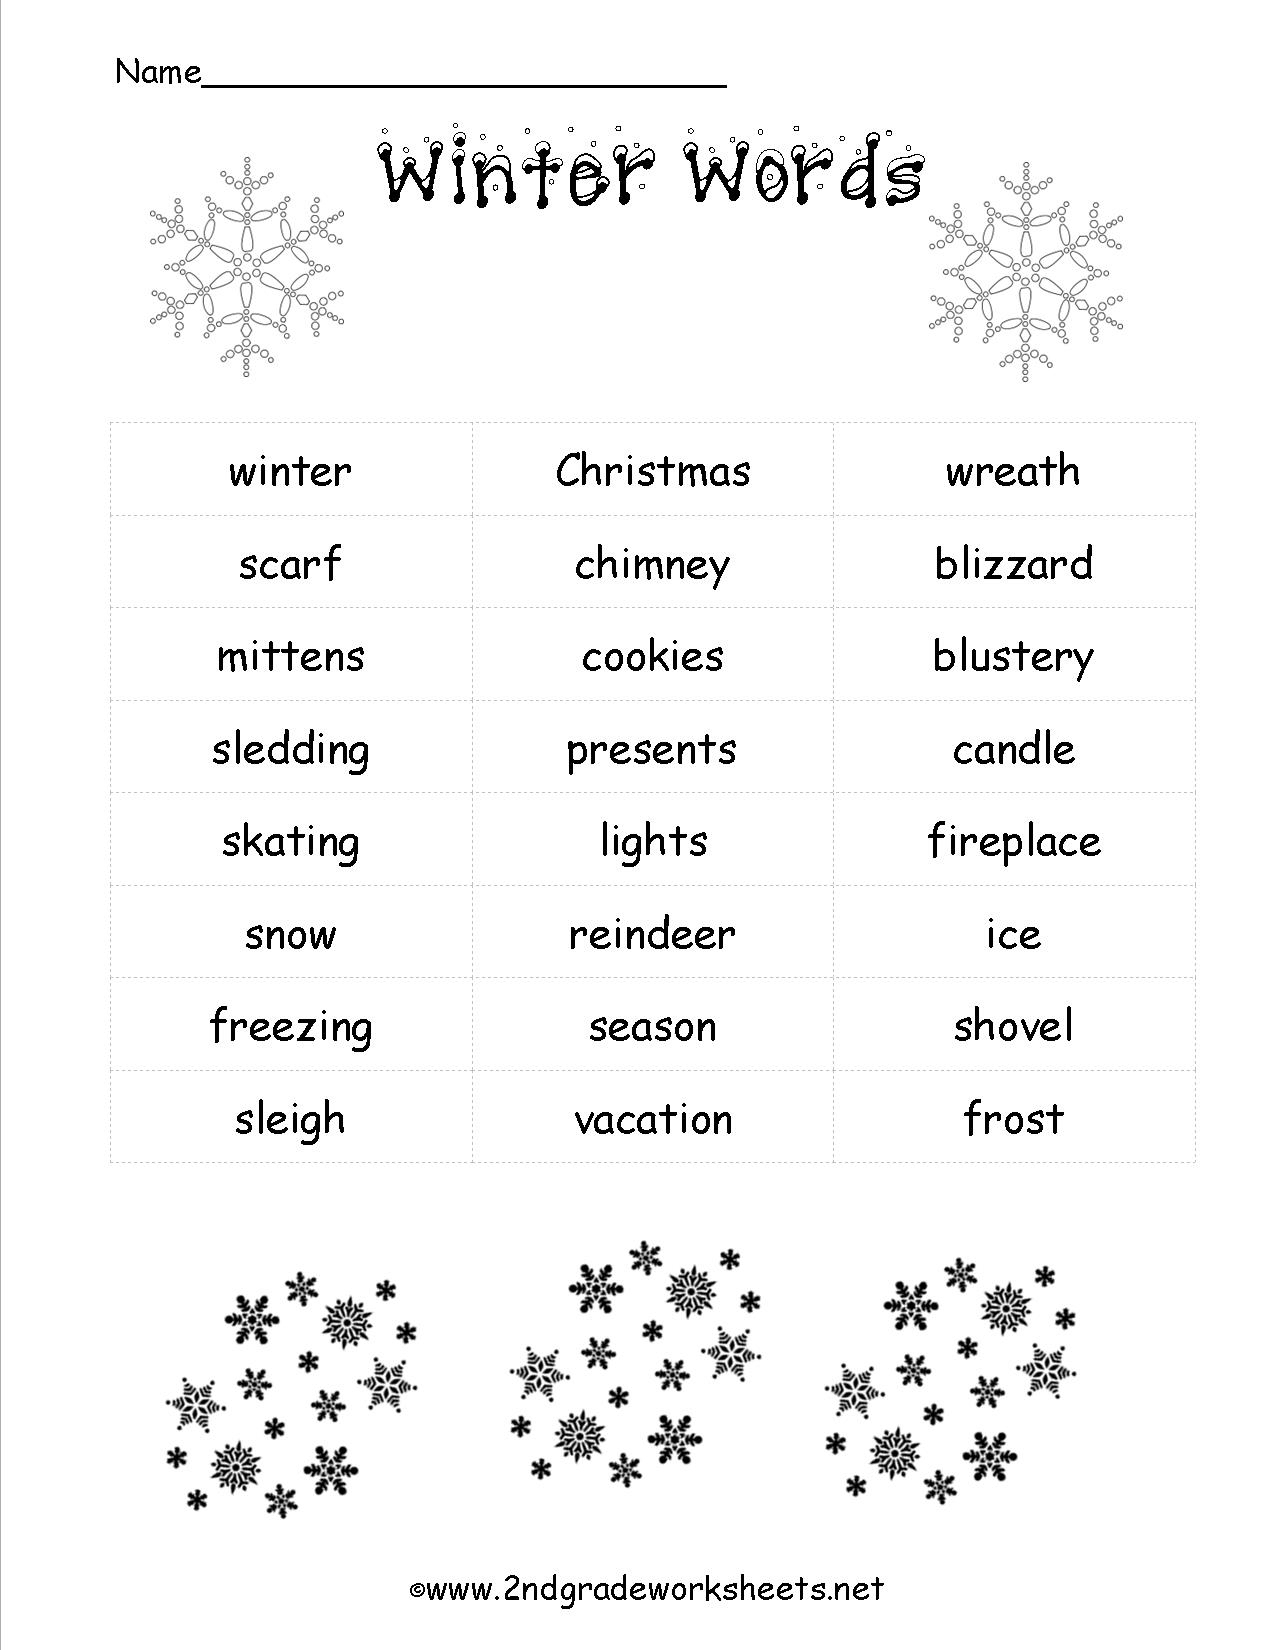 Christmas Worksheets And Printouts - Free Printable Christmas | Free Printable Christmas Worksheets For Third Grade